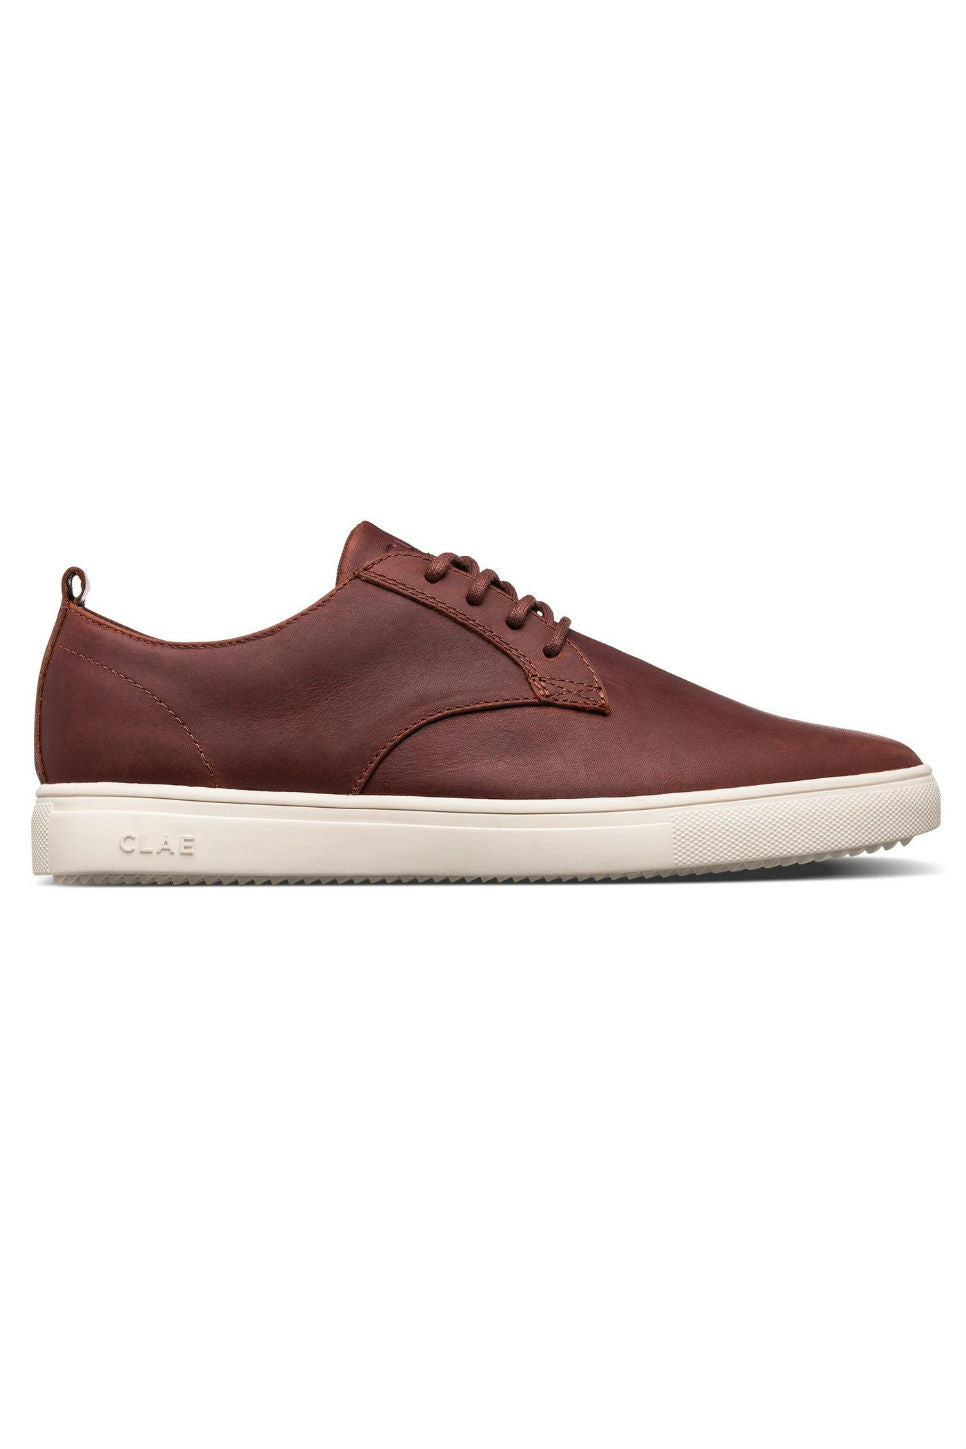 Clae - Ellington SP - Chestnut Oiled - Side